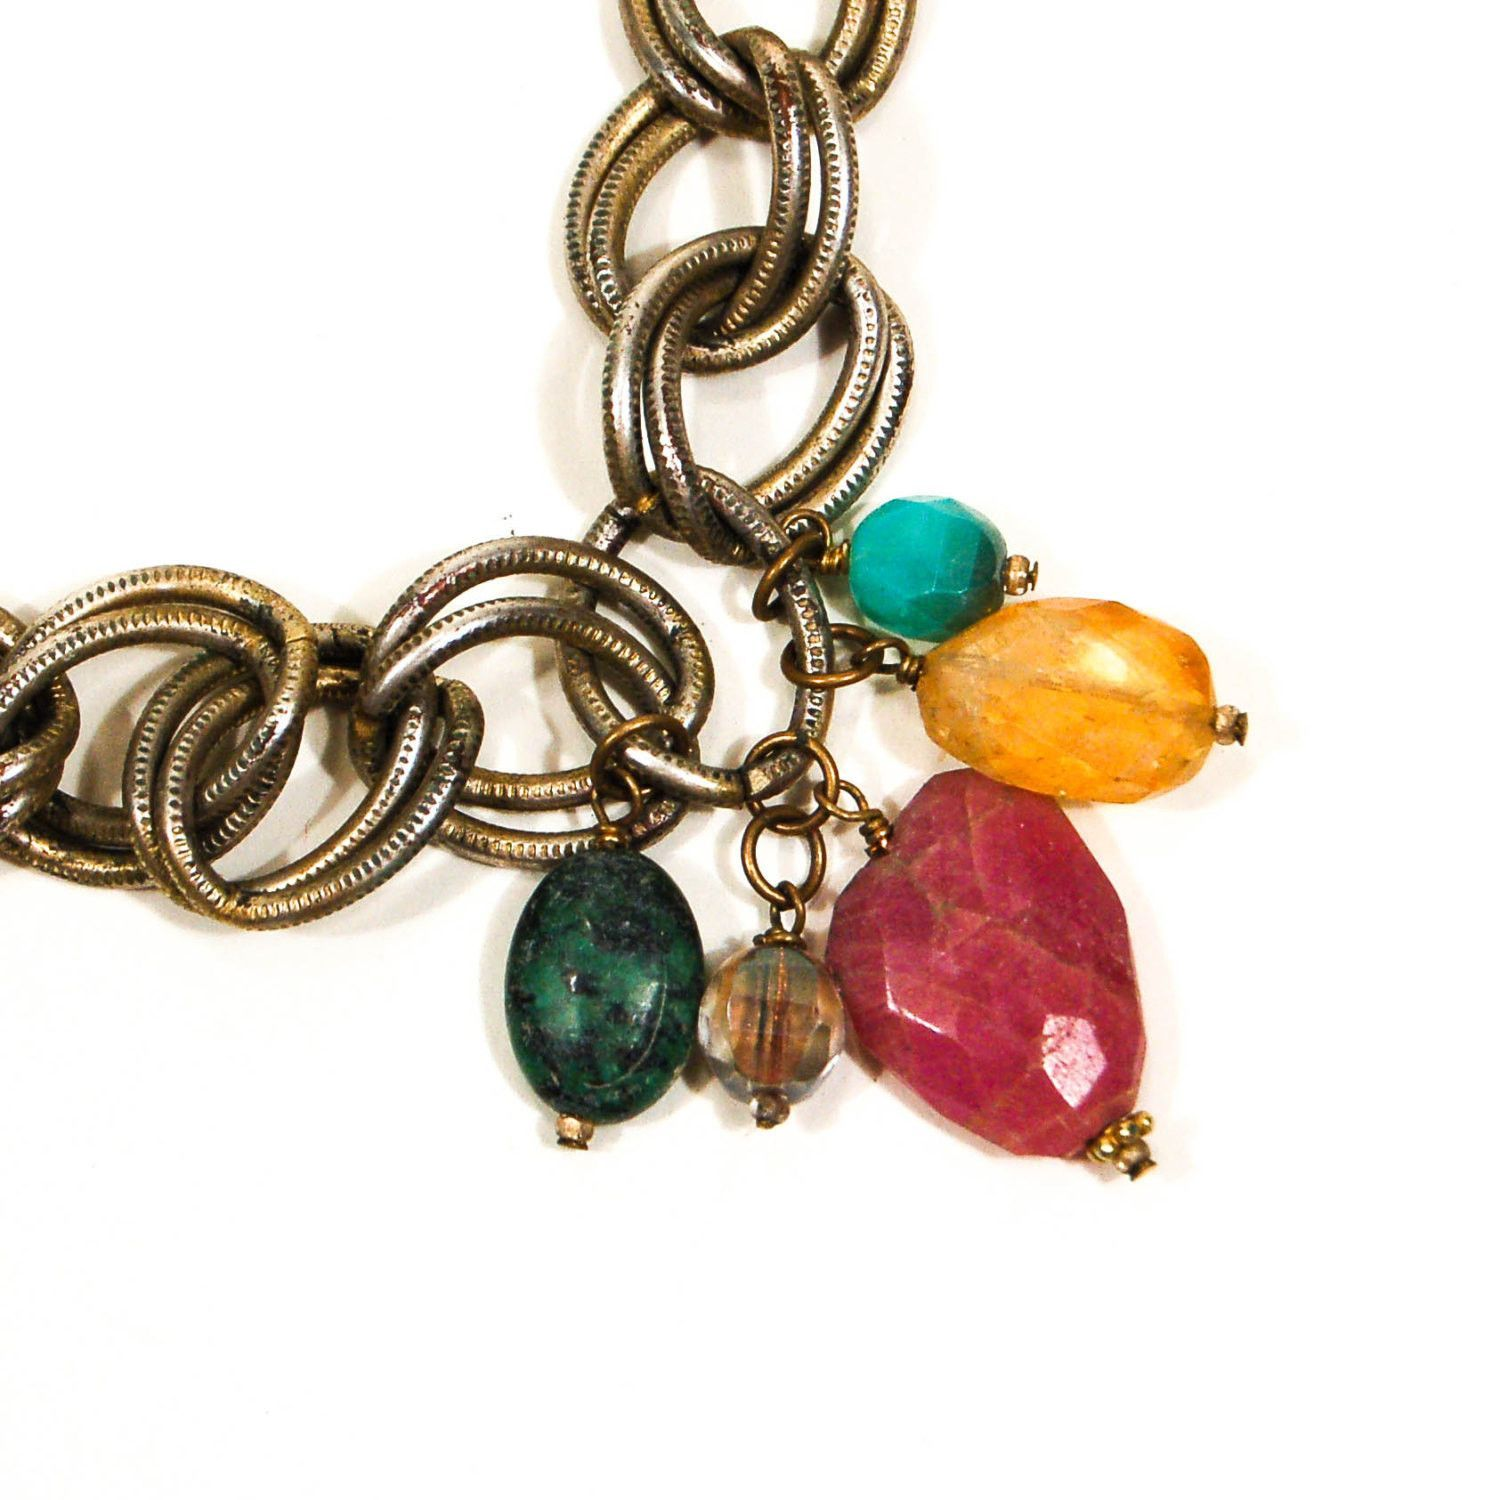 Chunky Charm Necklace with Semi Precious Stones by Rachel Reinhardt